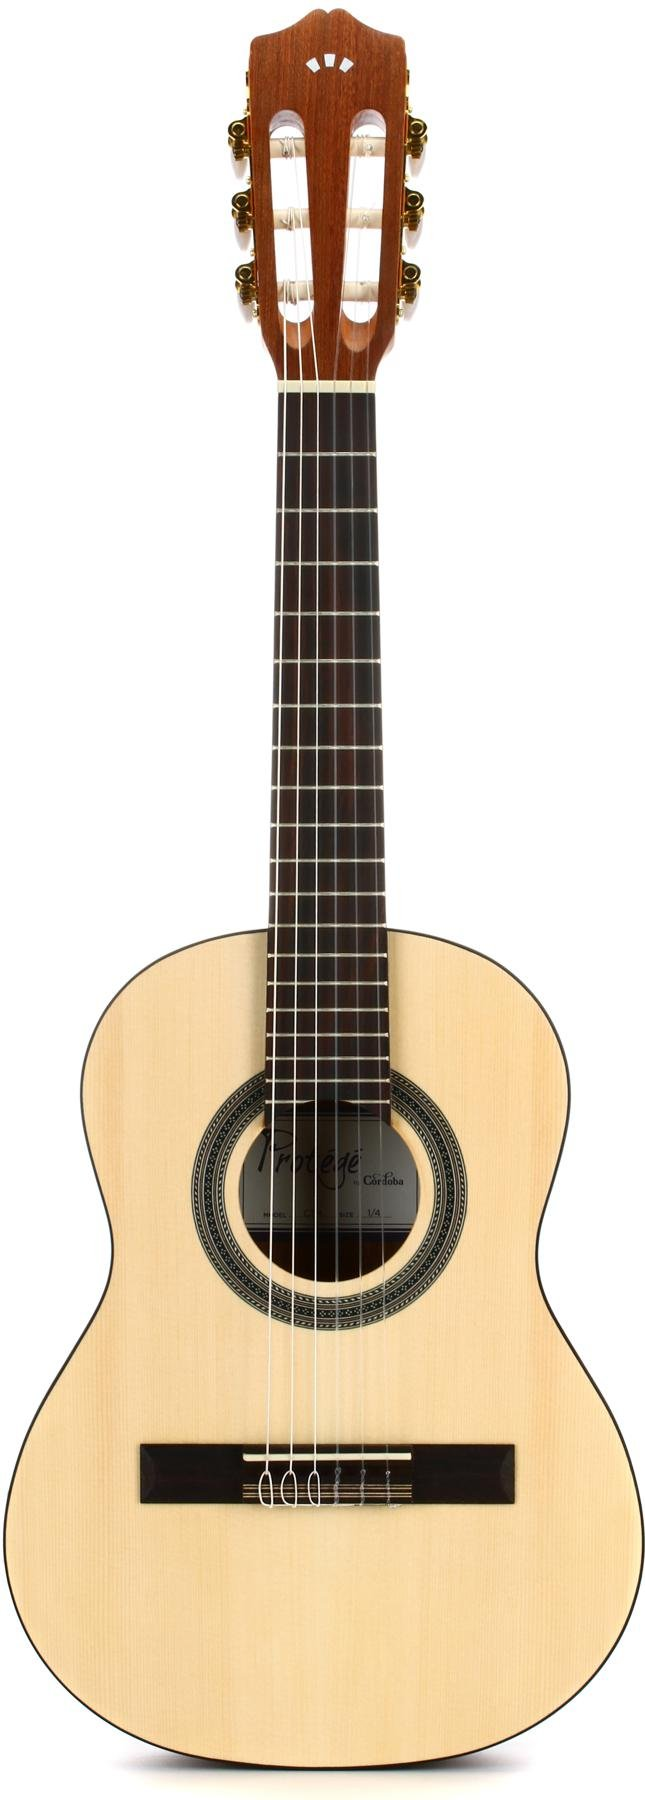 Cordoba Protege C1m 1 4 Size Natural Sweetwater